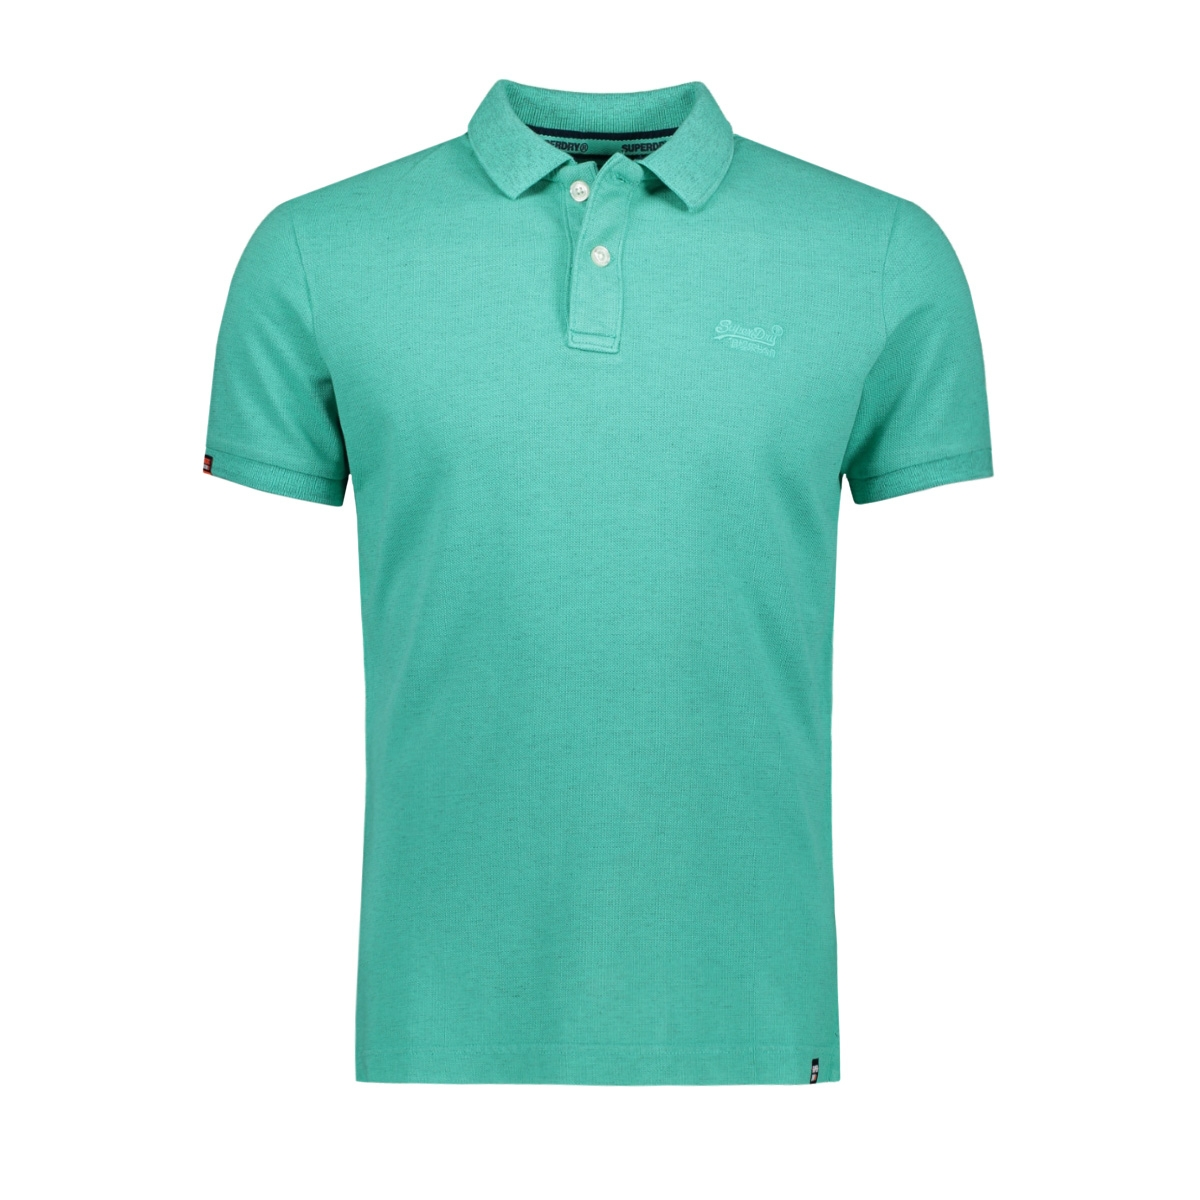 m11017rt superdry polo aqua marl